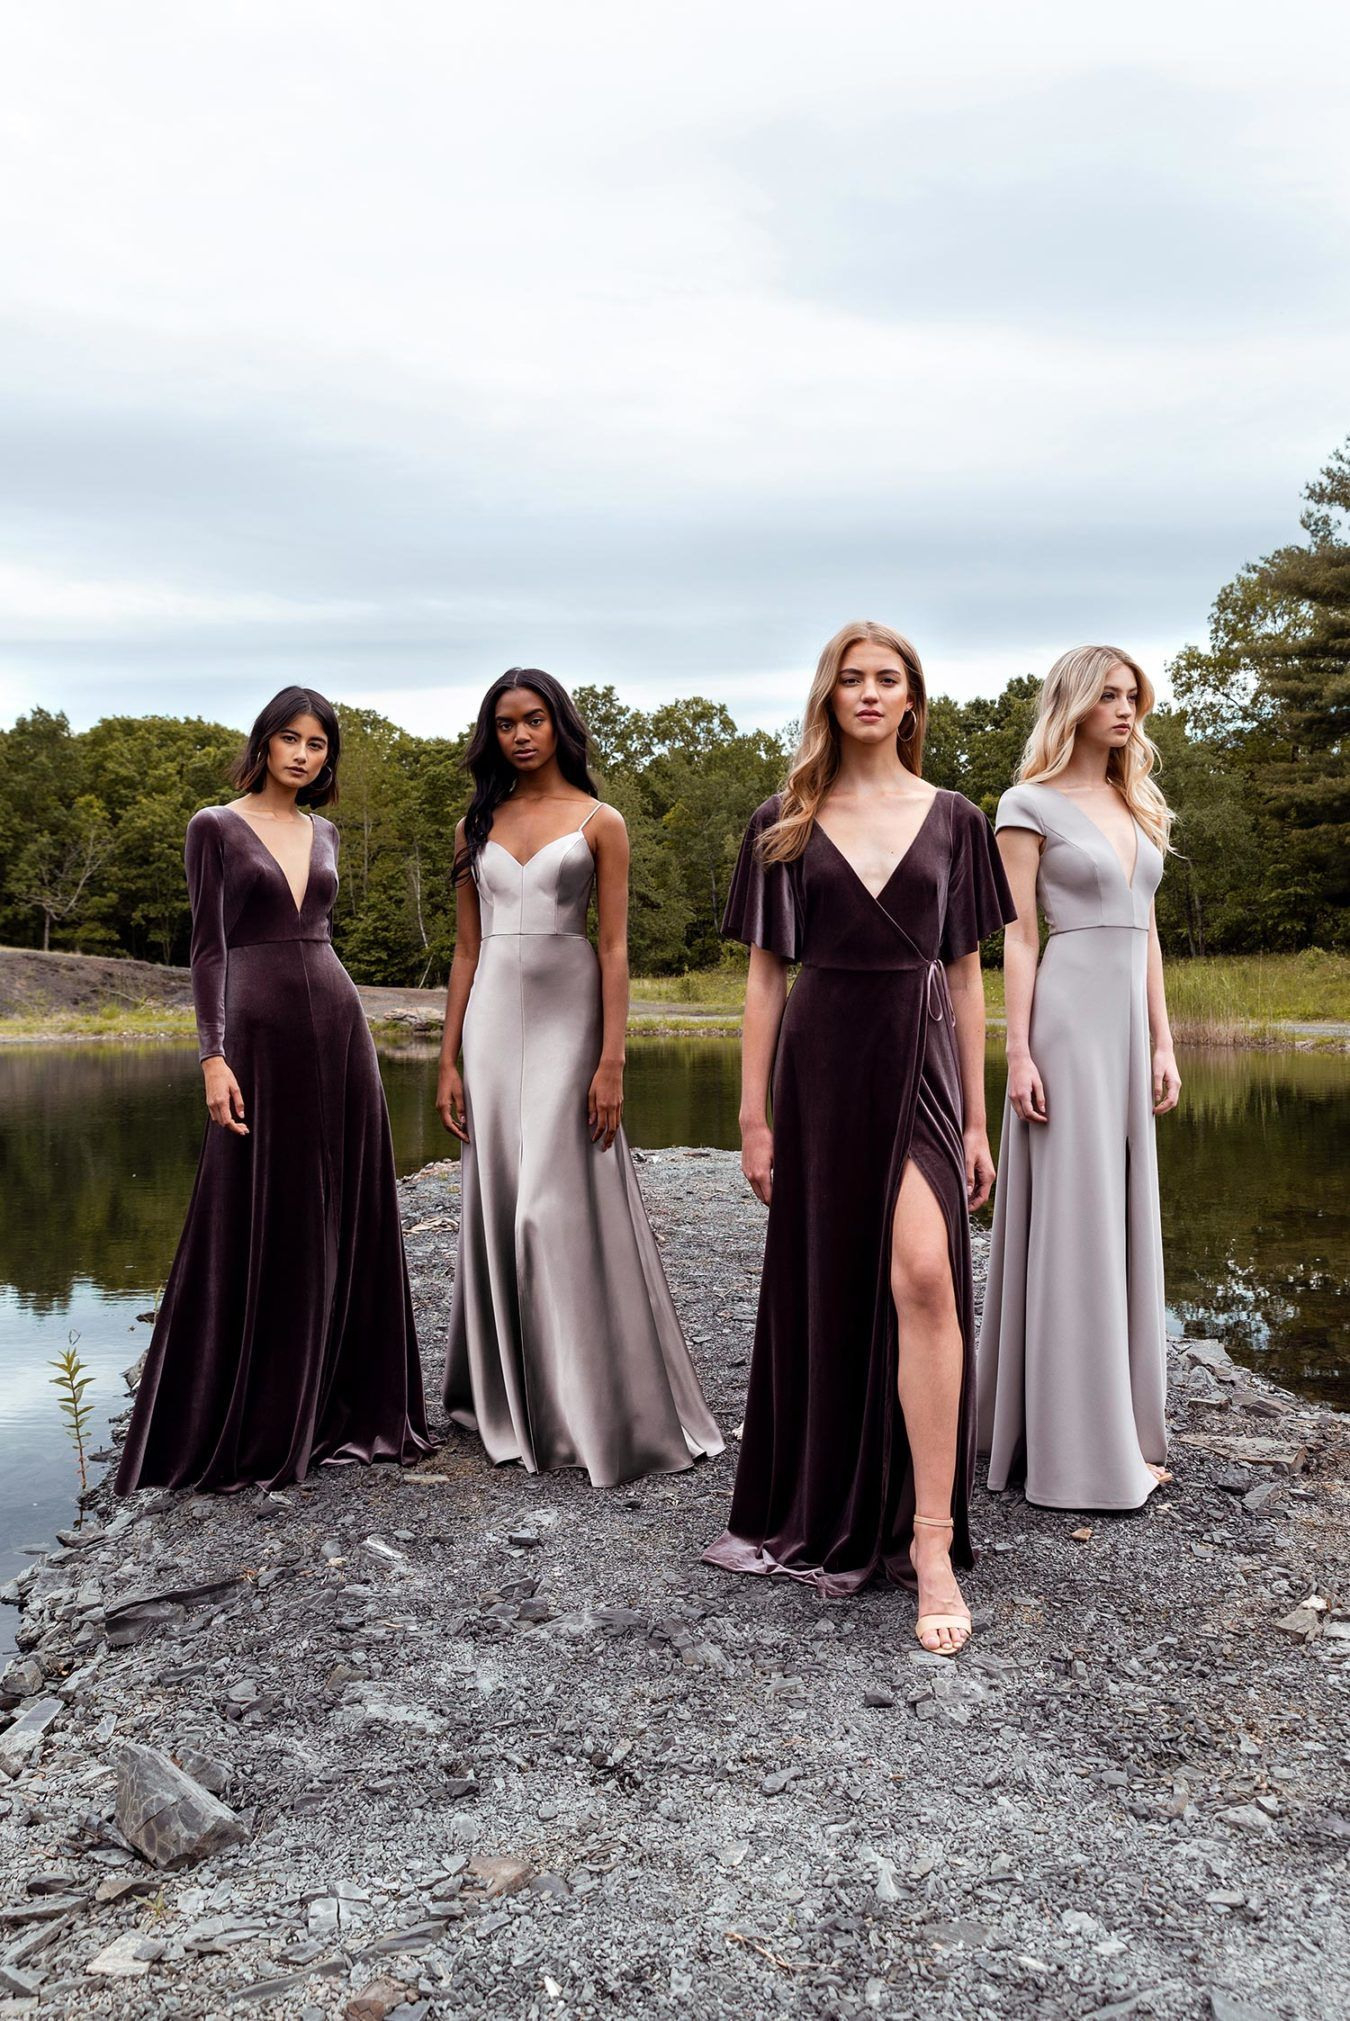 This Is How You Pull Off The Mismatched Bridesmaid Look